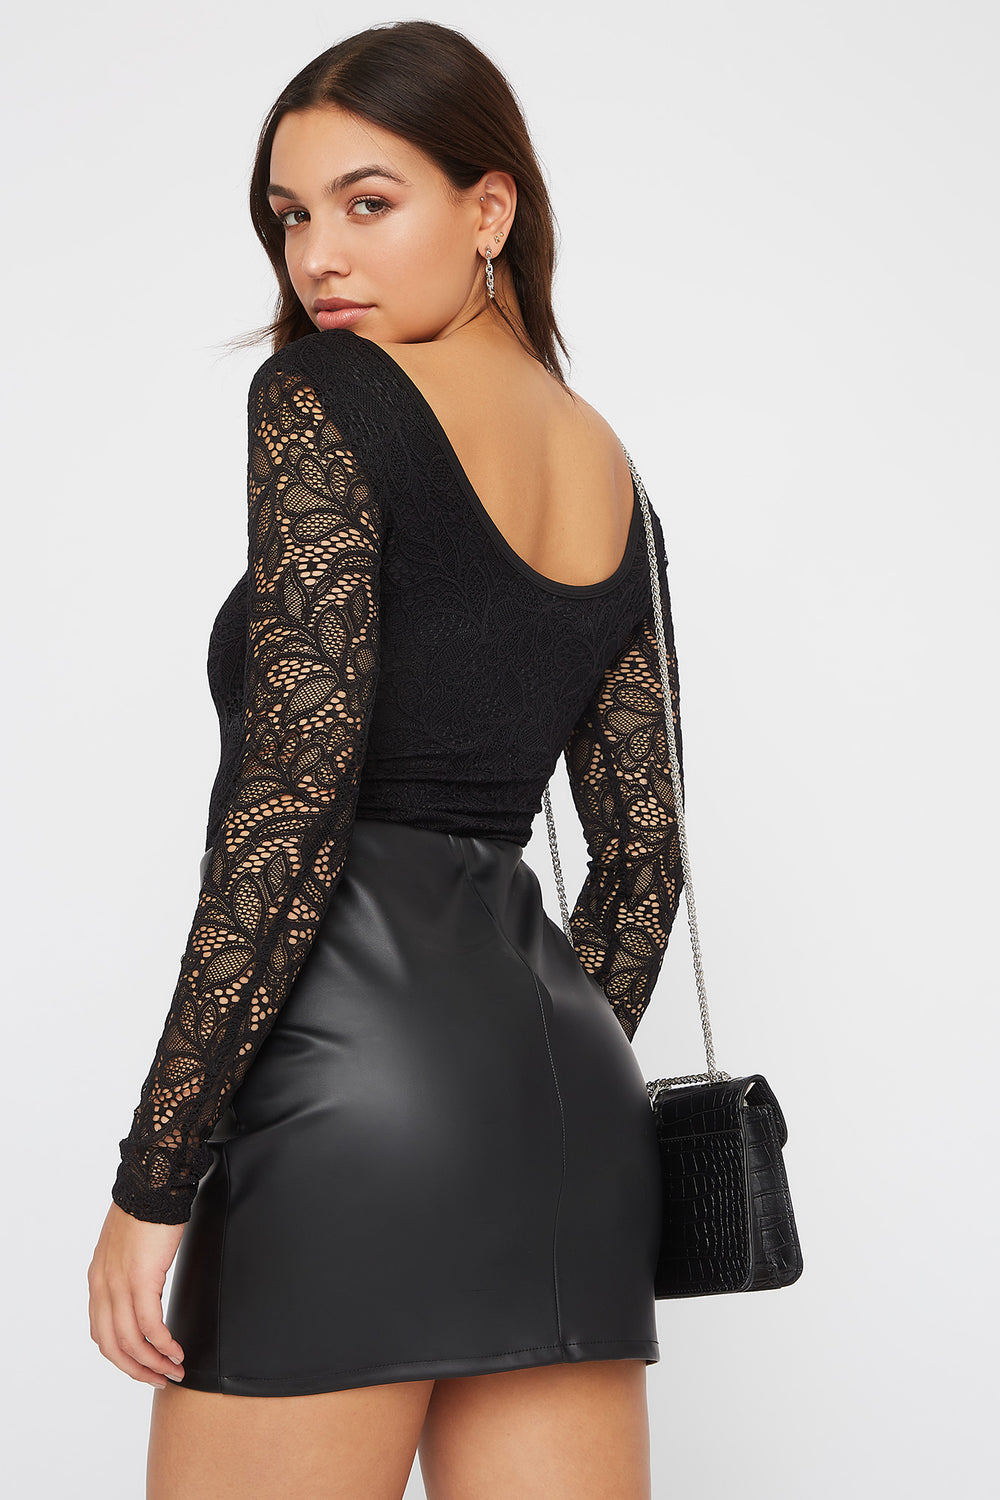 Floral Lace Long Sleeve Bodysuit Black